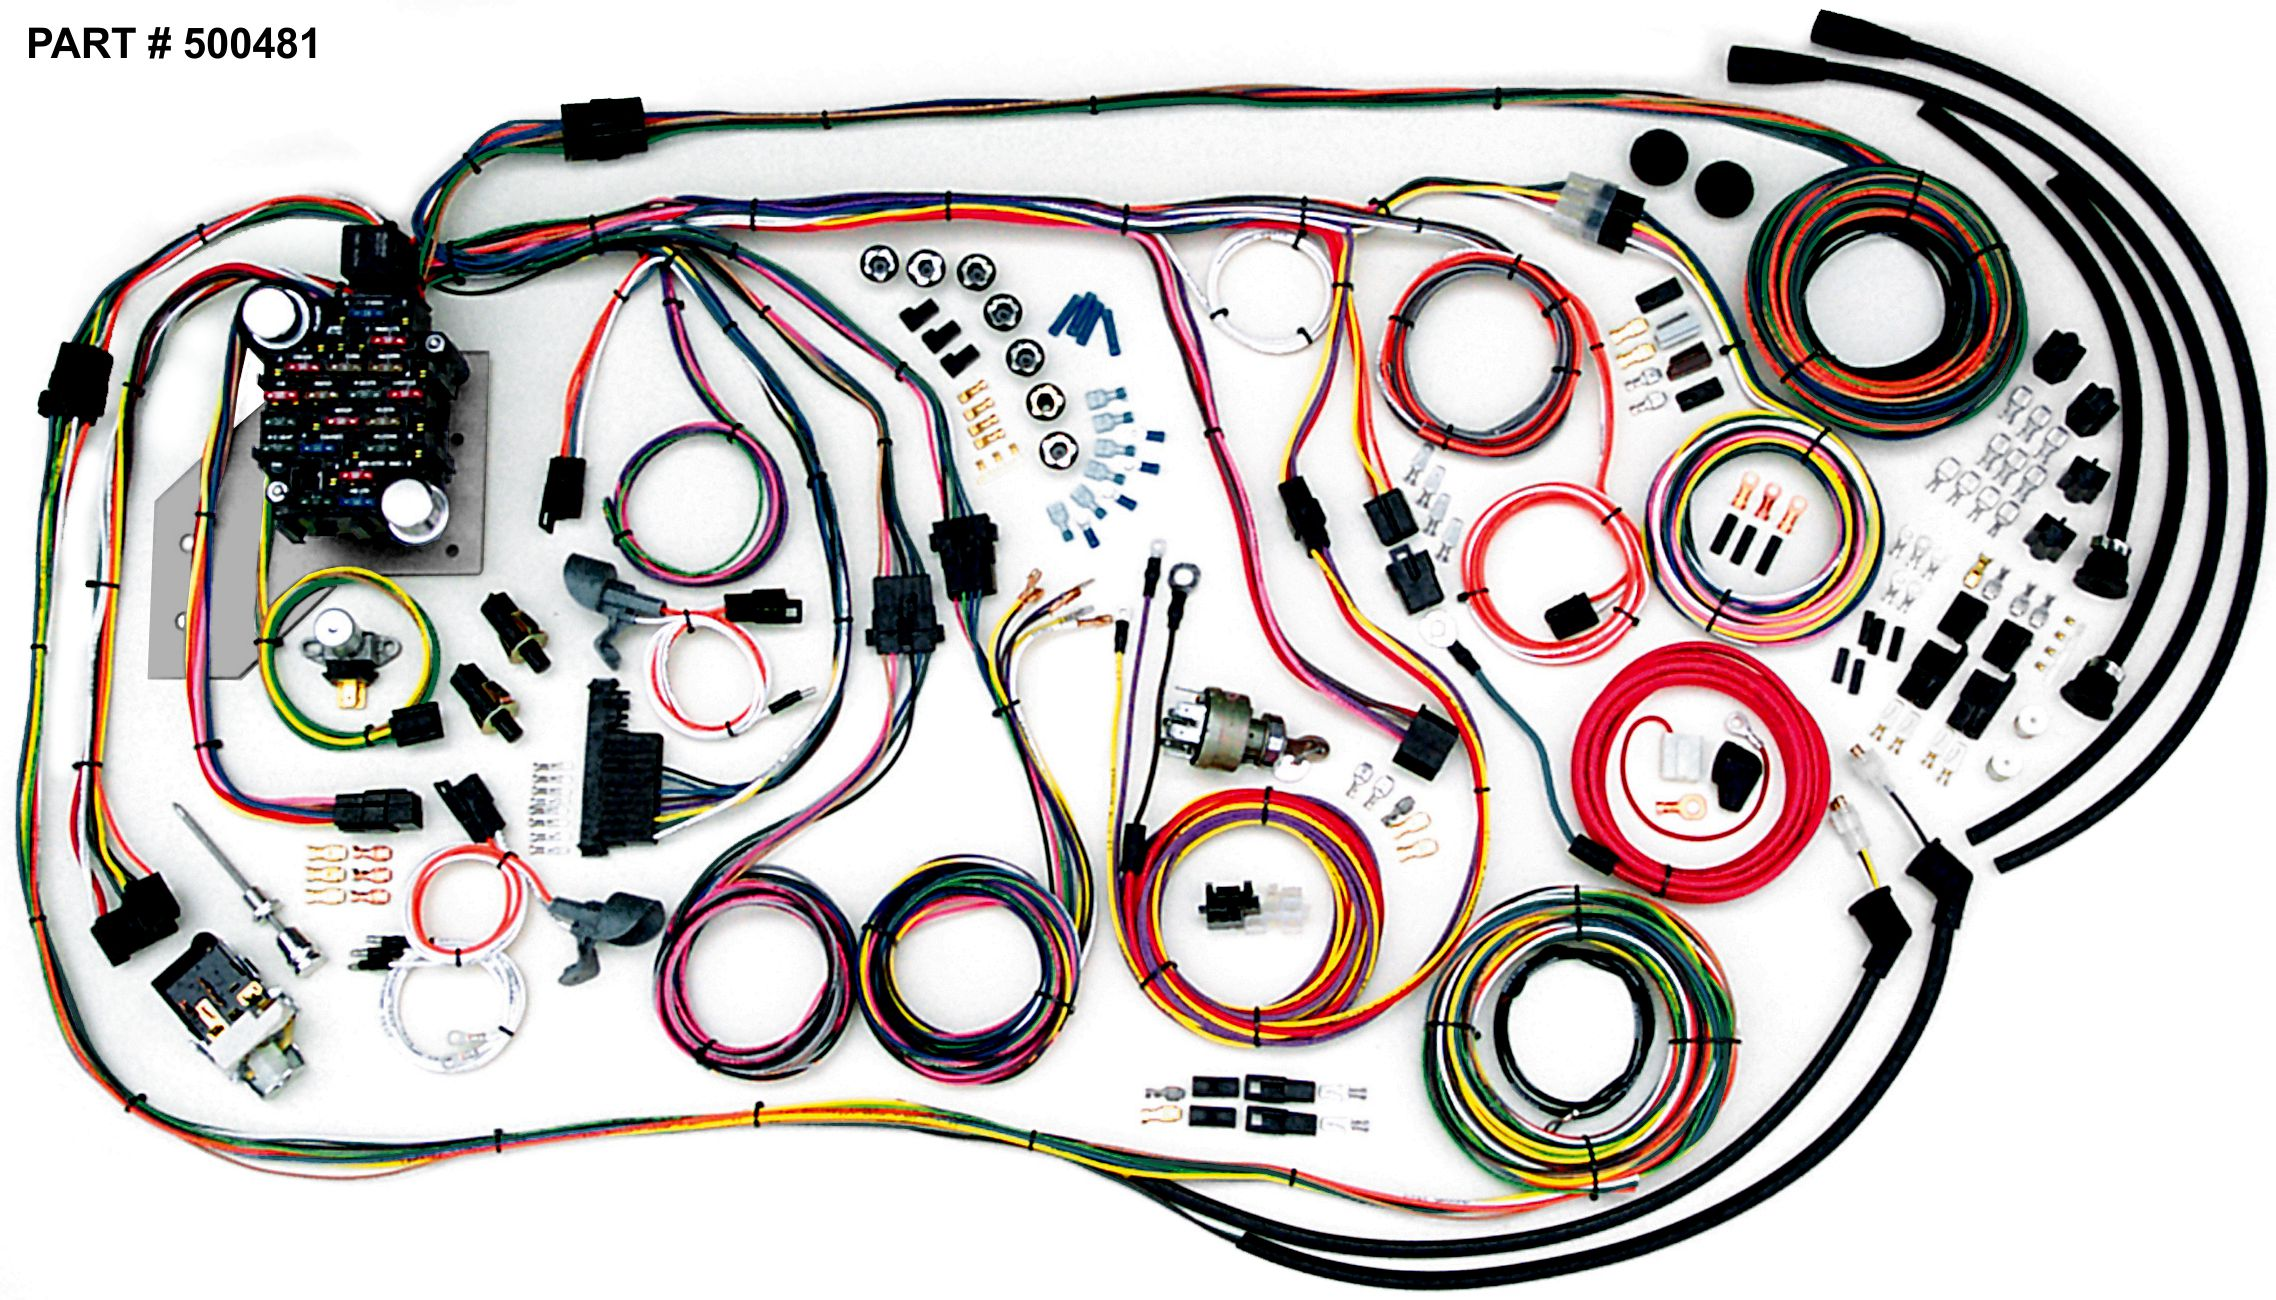 1955 2nd Series 1956 Chevrolet GMC Trucks RestoMod Wiring System - Gmc Truck Wiring Harness